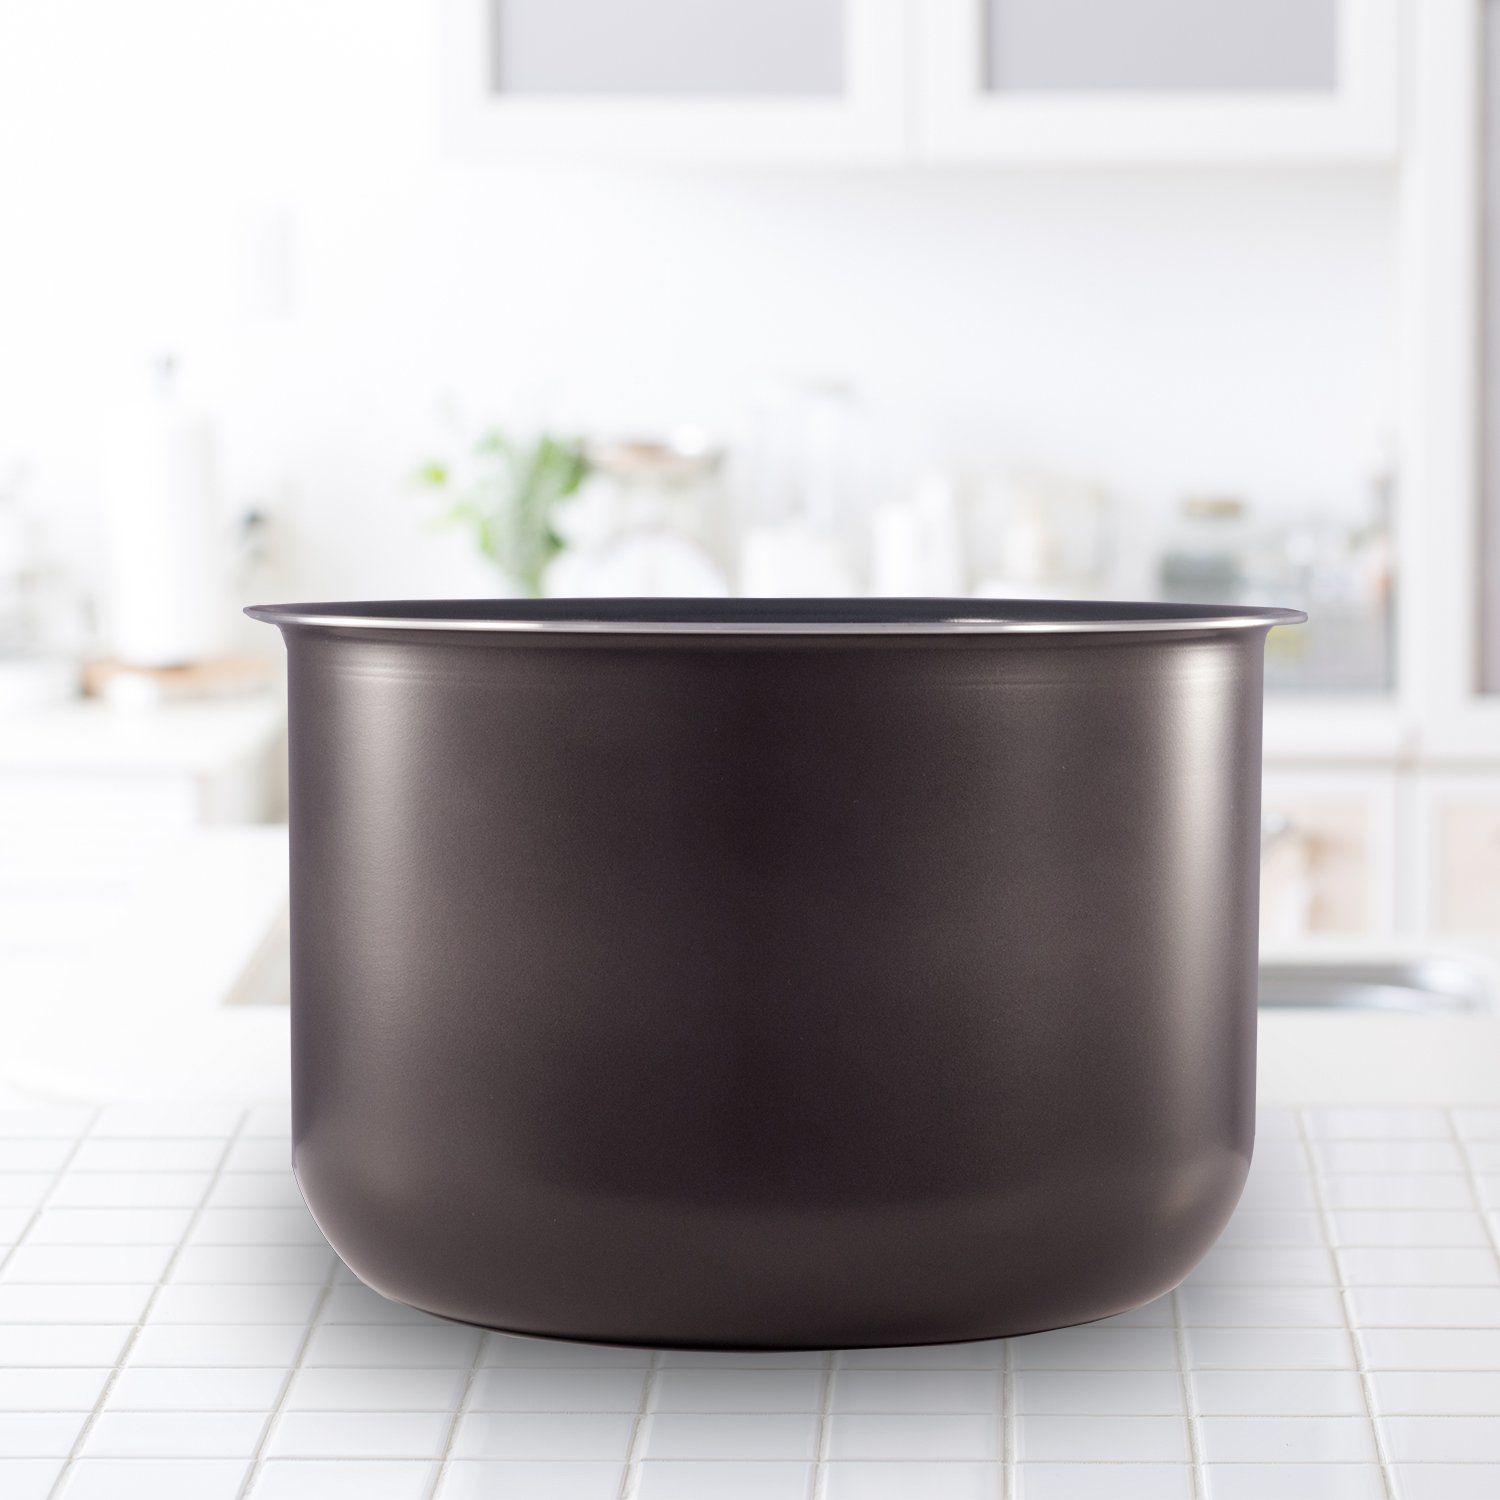 Ceramic Non-Stick Interior Coated Inner Cooking Pot